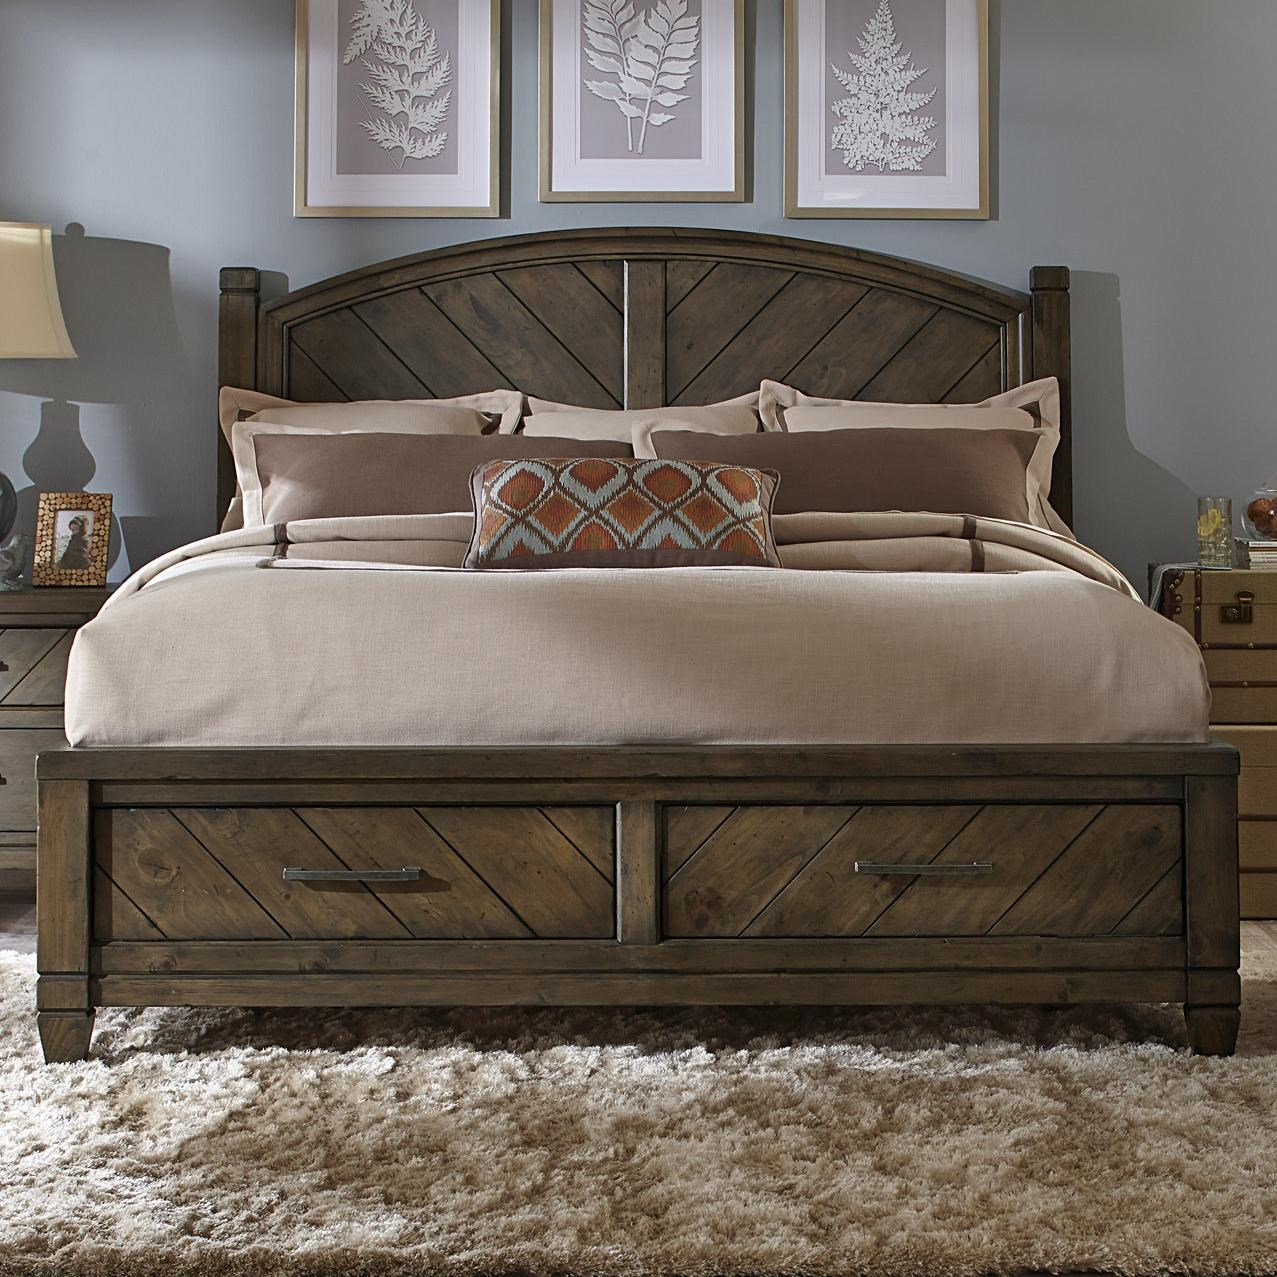 Liberty Furniture Modern Country Casual Rustic King Bed With Storage  Footboard